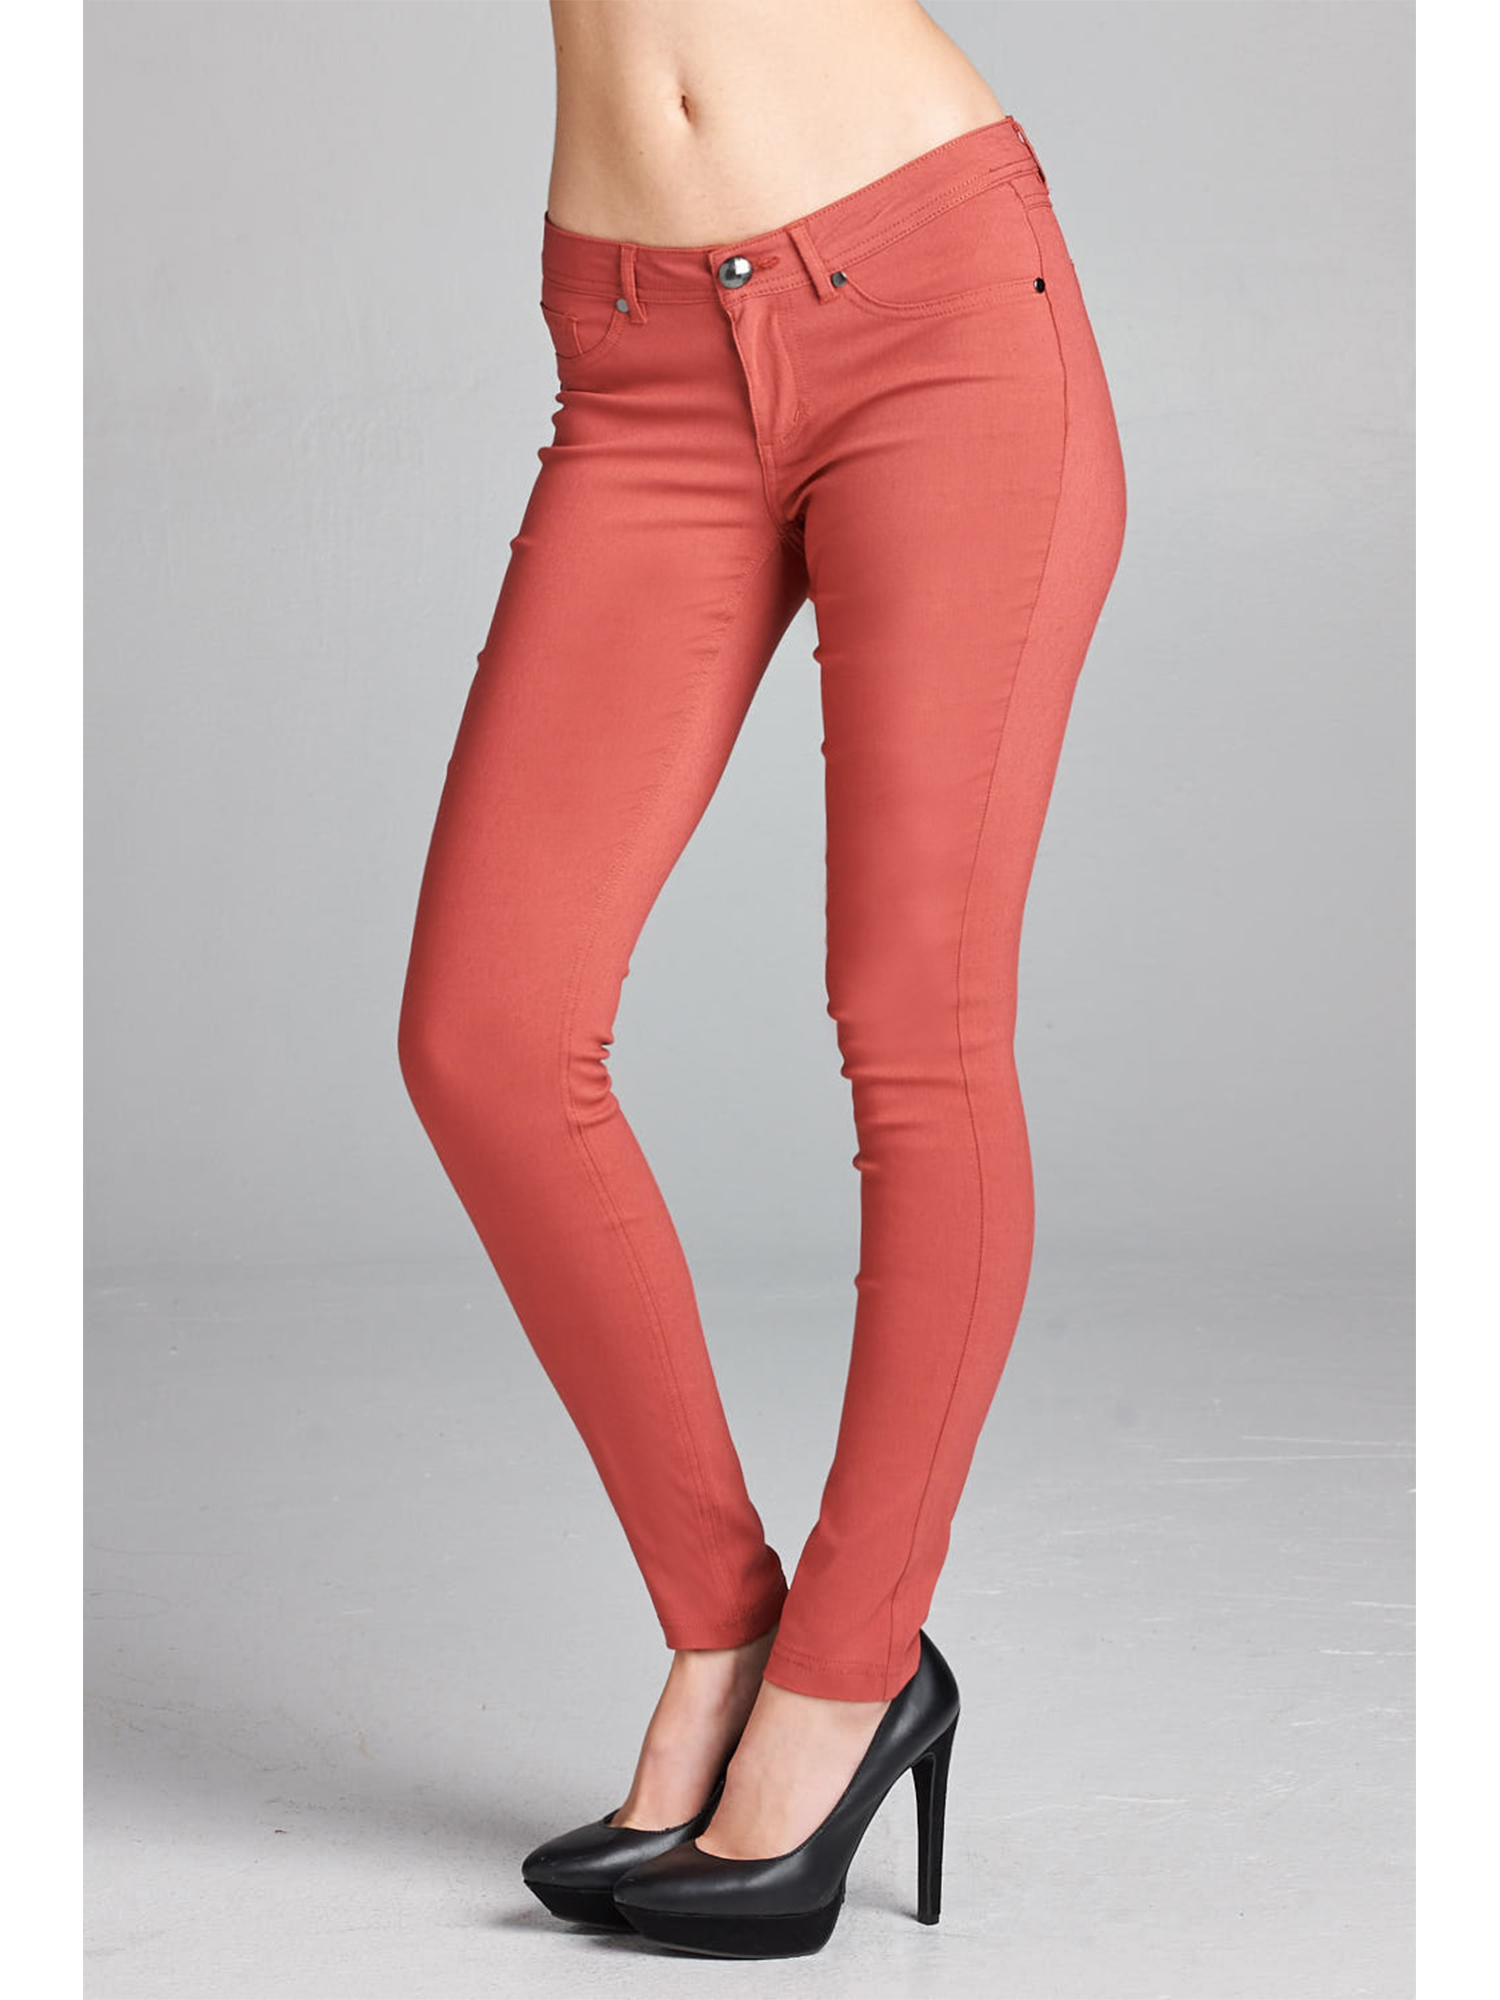 Low Waisted Skinny Fit New RRP £20 EX NEW LOOK Supersoft Red Ladies Jeans